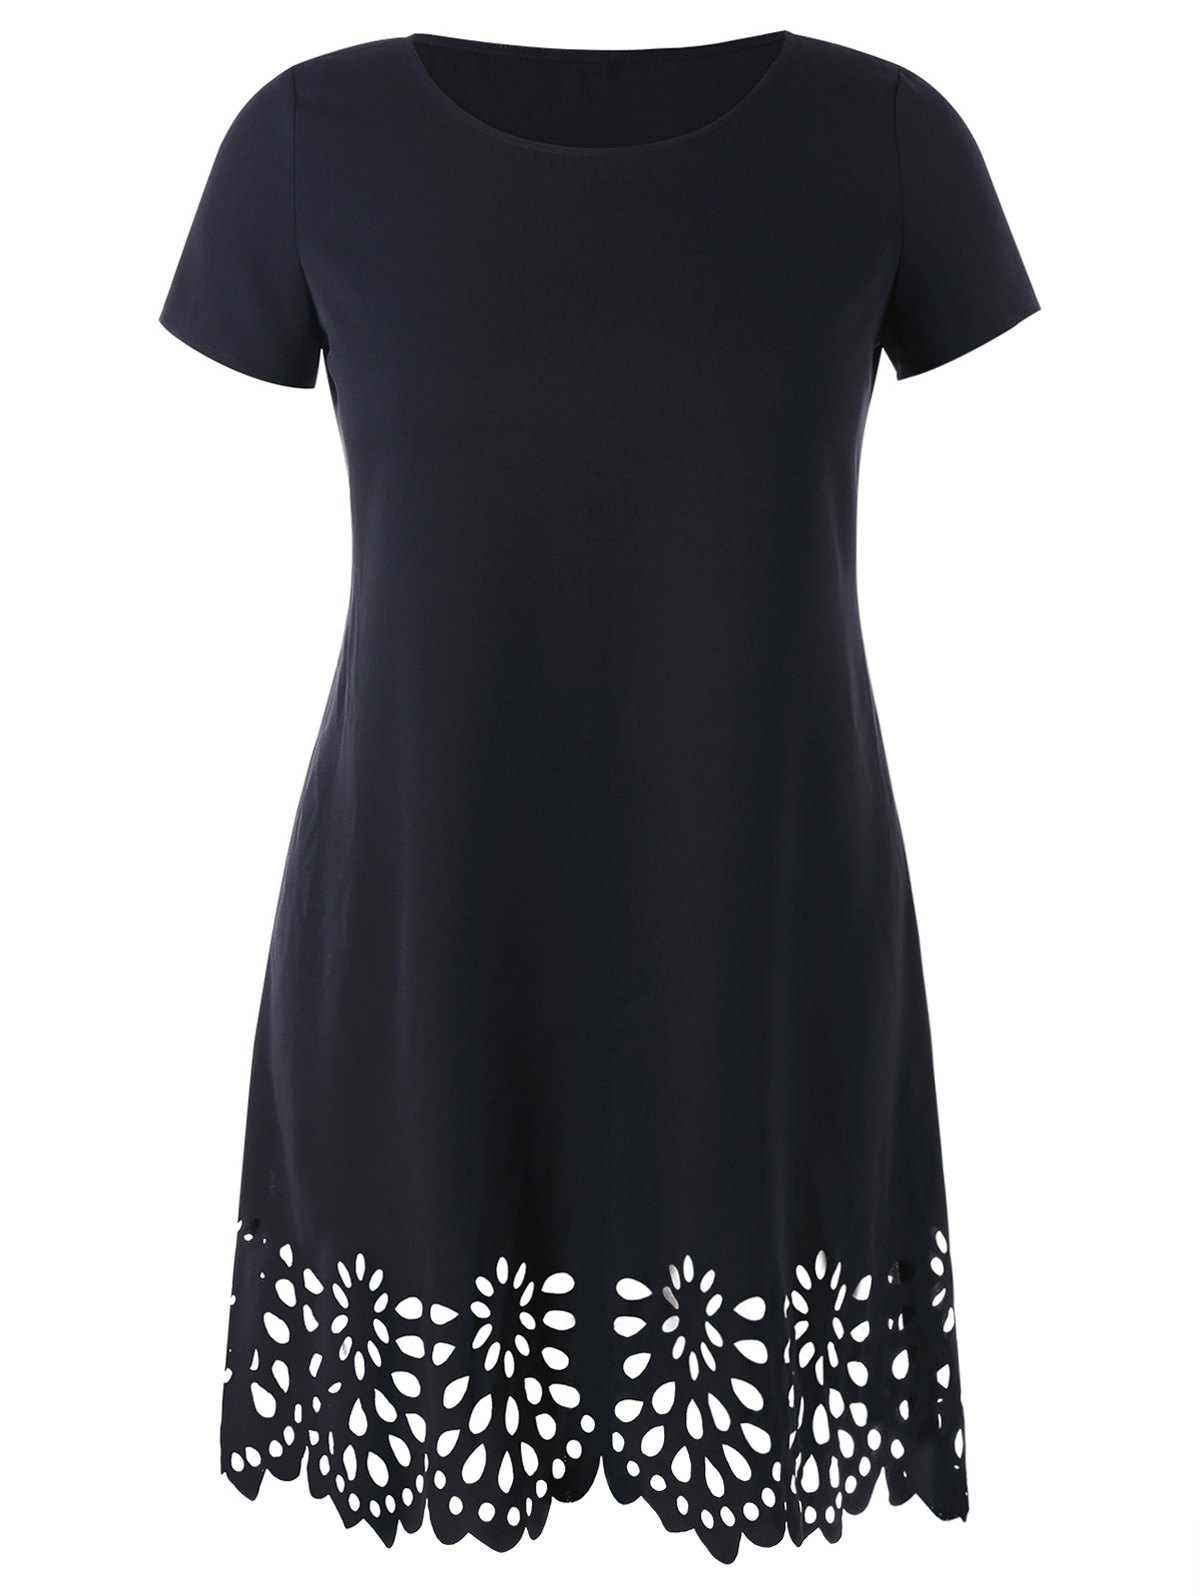 Hot Openwork Scalloped Hem Plus Size Tee Dress